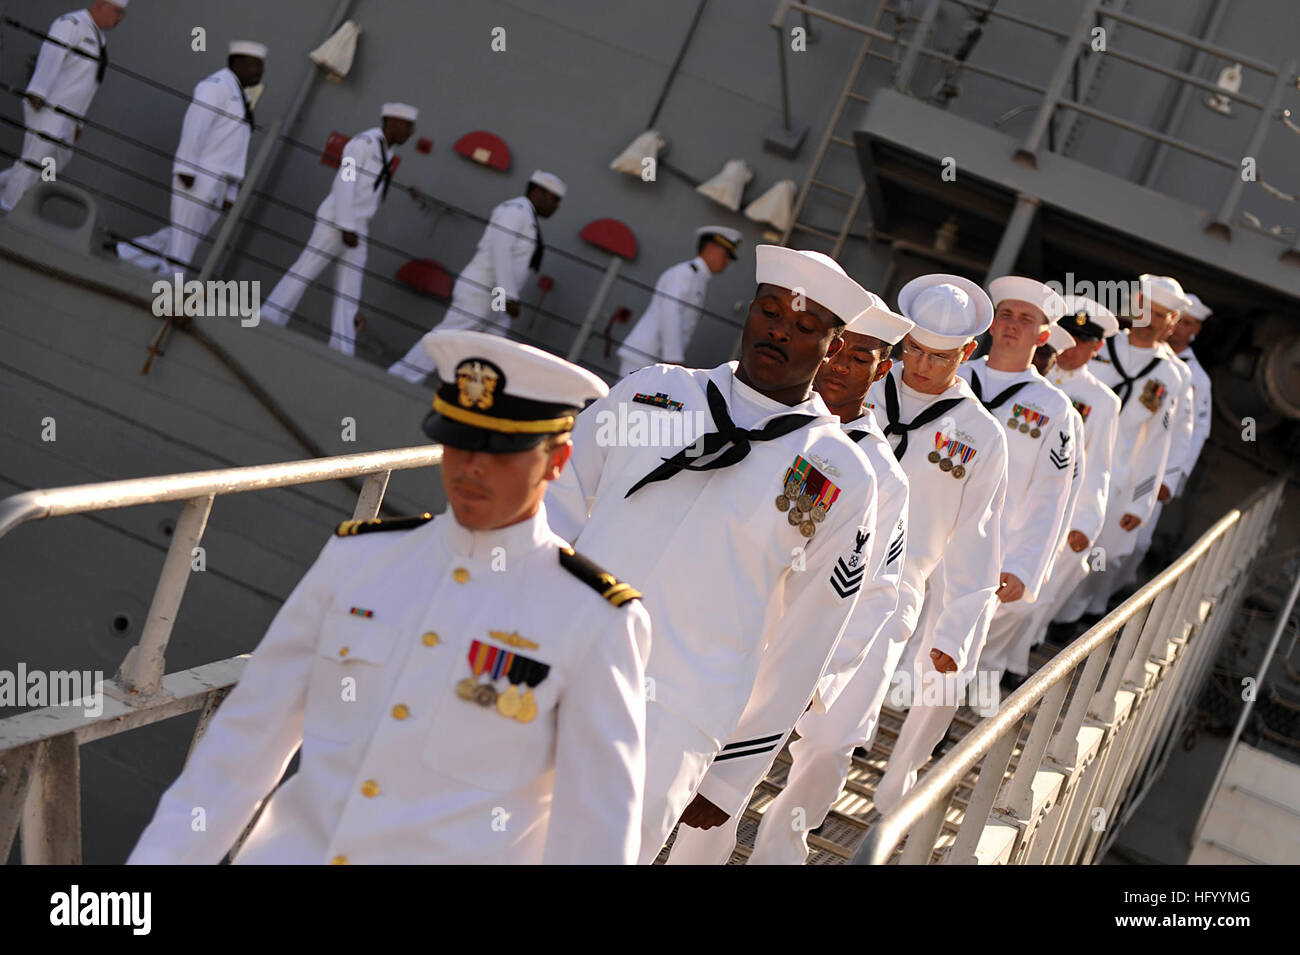 110729-N-YR391-012 MAYPORT, Fla. (July 29, 2011) Sailors assigned to the guided-missile frigate USS Doyle (FFG 39) - Stock Image